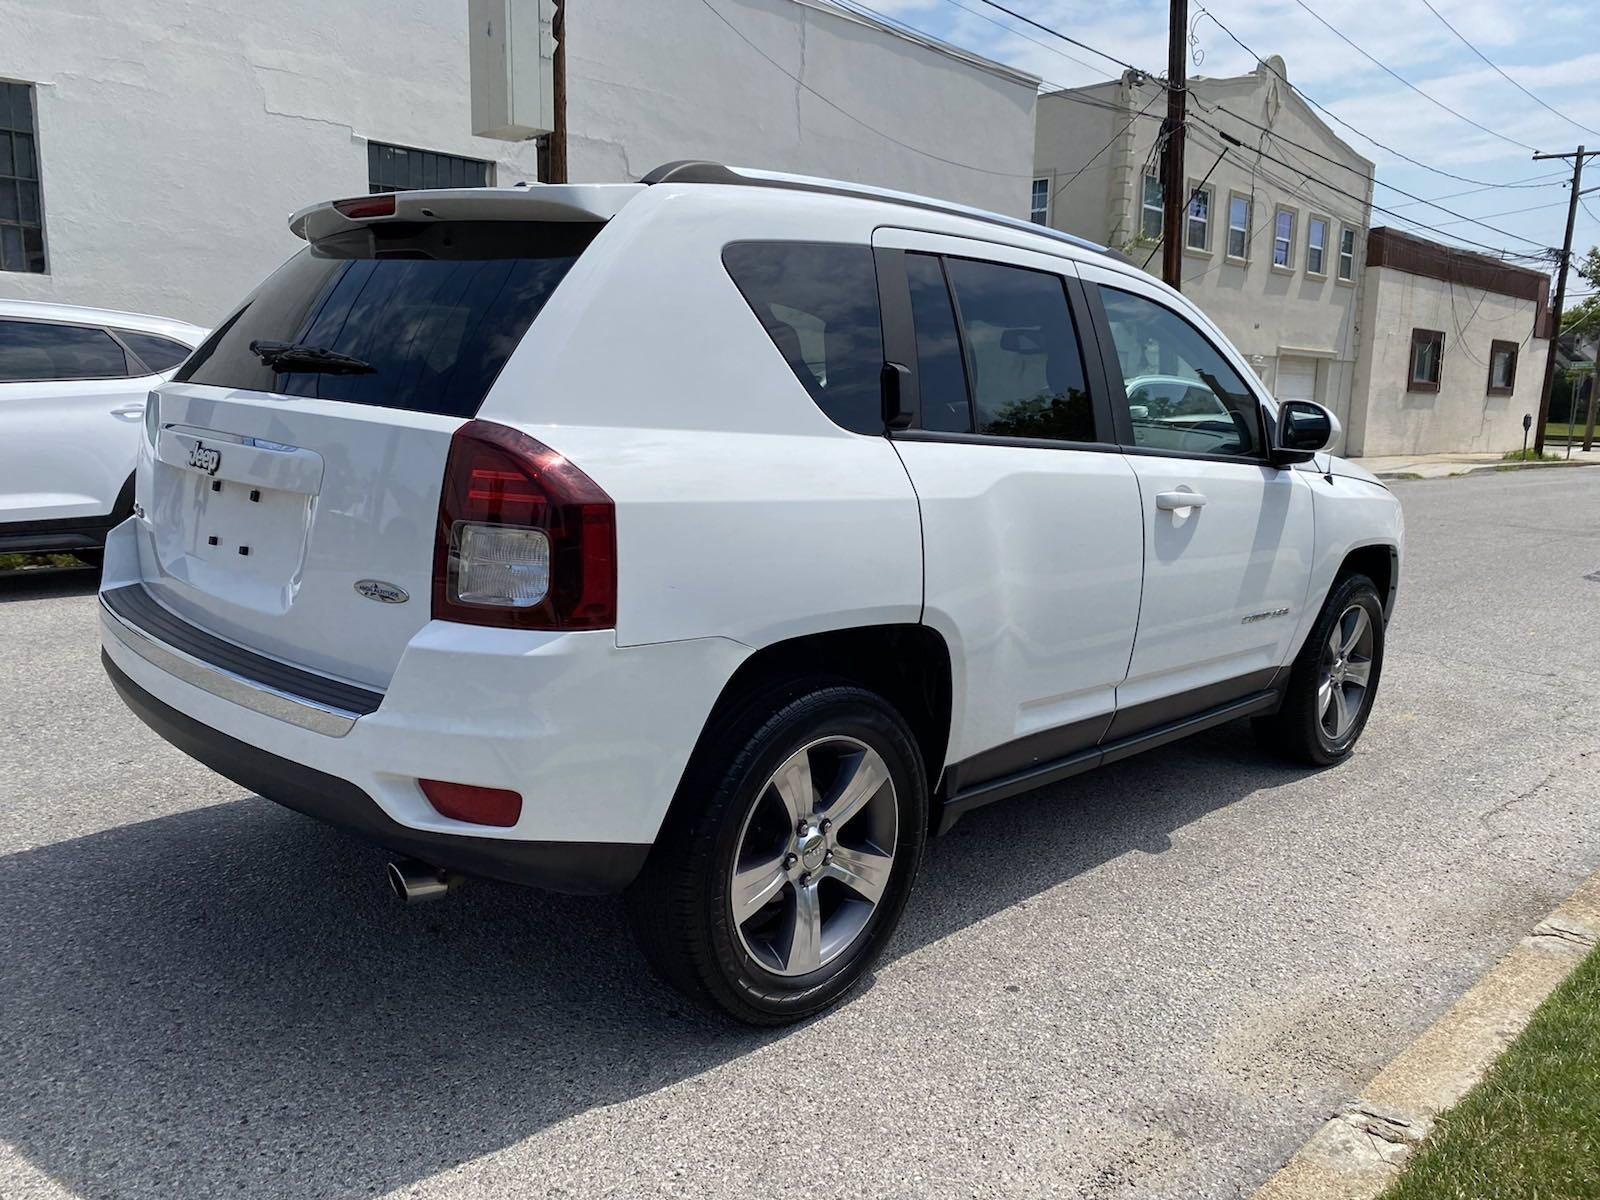 Used-2017-Jeep-Compass-High-Altitude